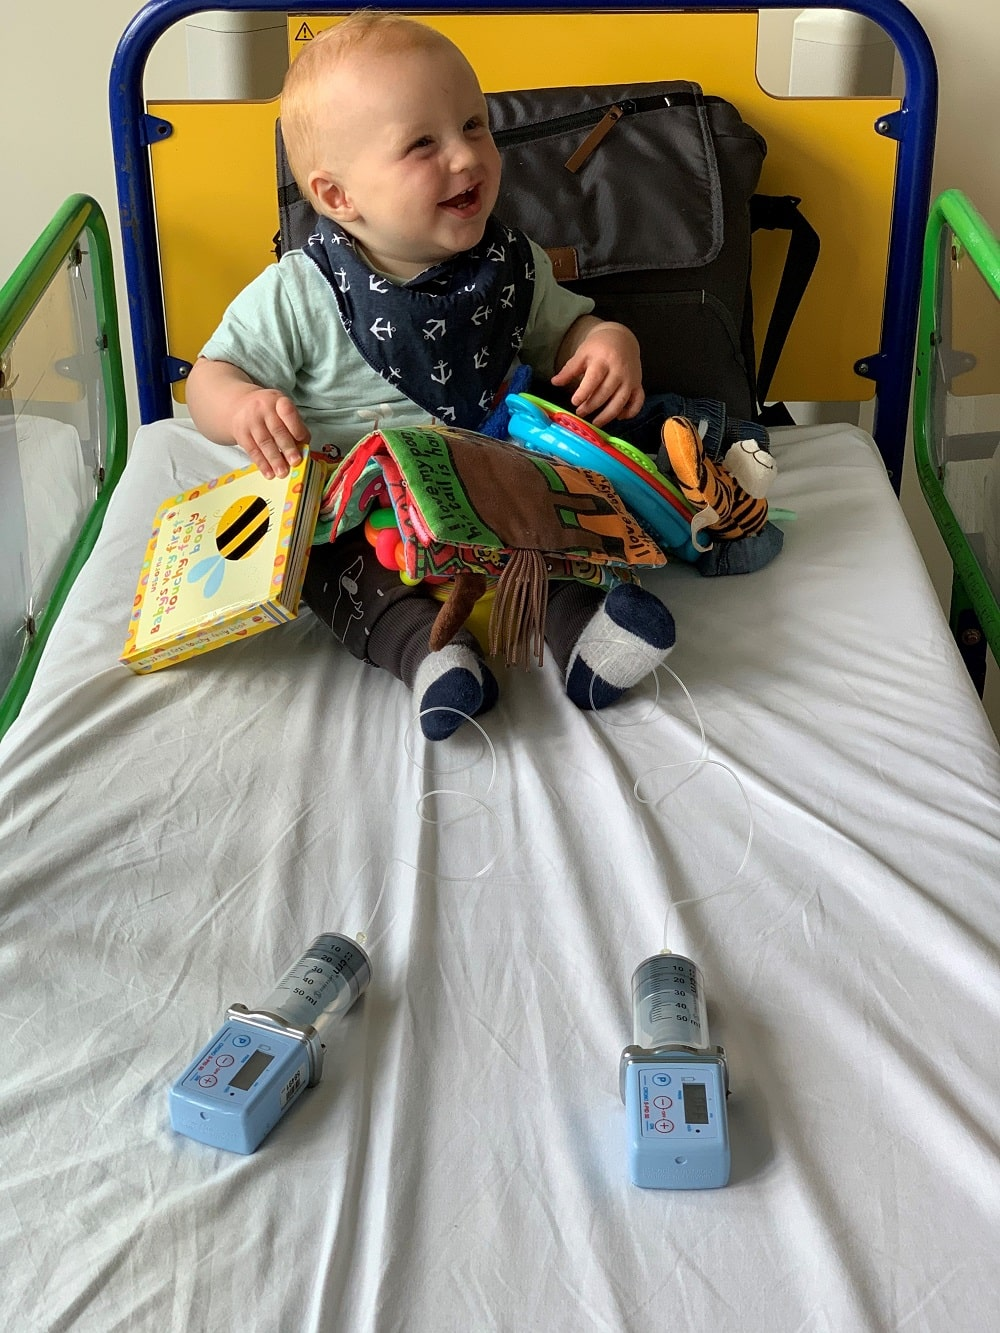 Sebastian is sitting on a hospital bed. He's playing with books and smiling while he has immunoglobulin infusions in his legs